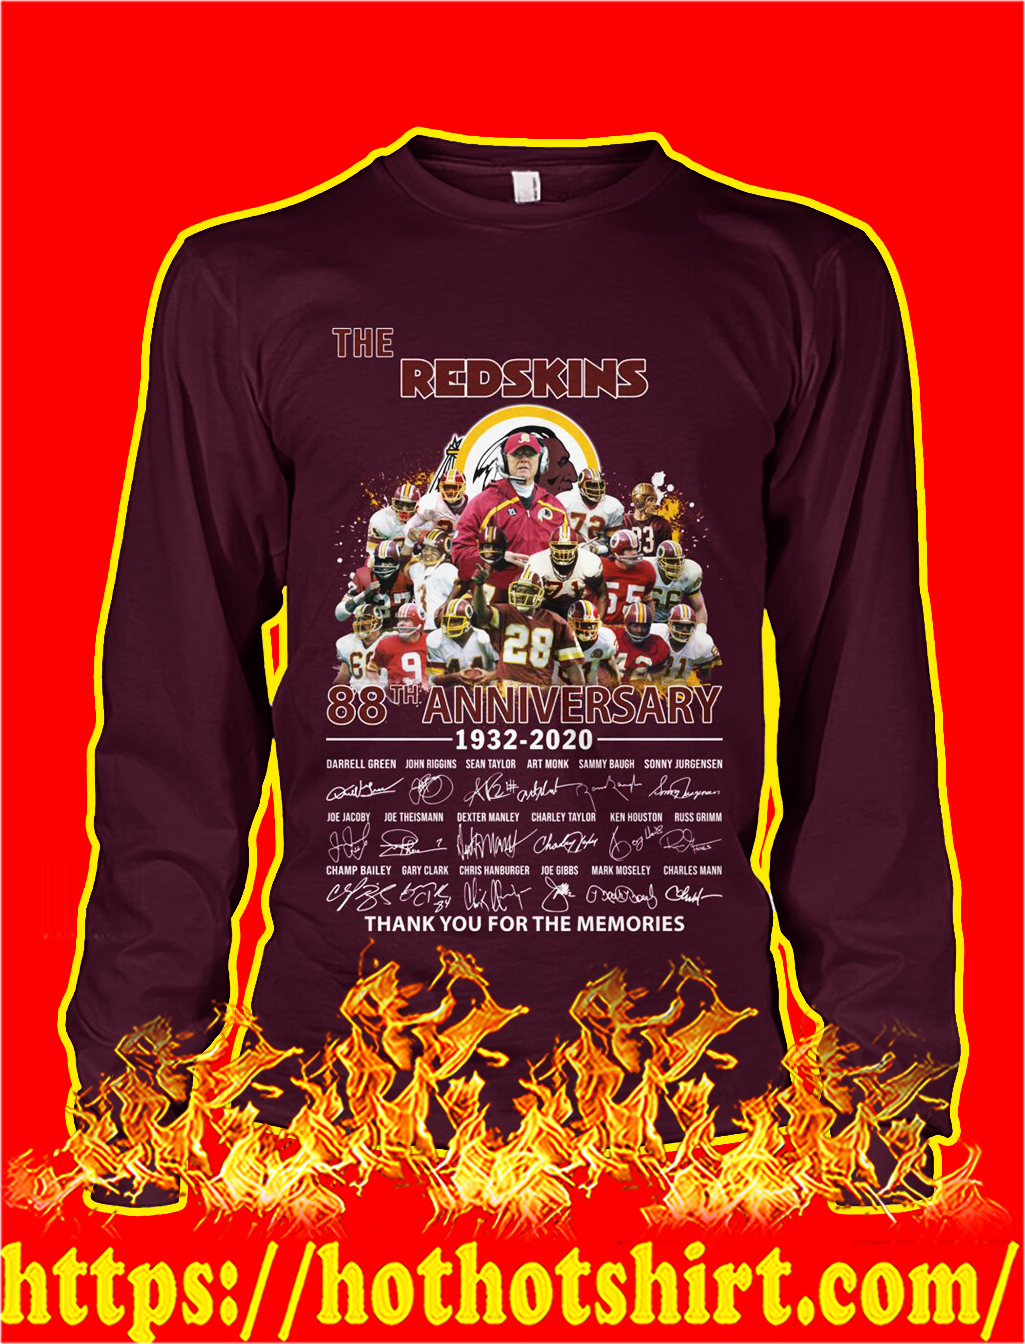 The redskins 88th anniversary thank you for the memories longsleeve tee